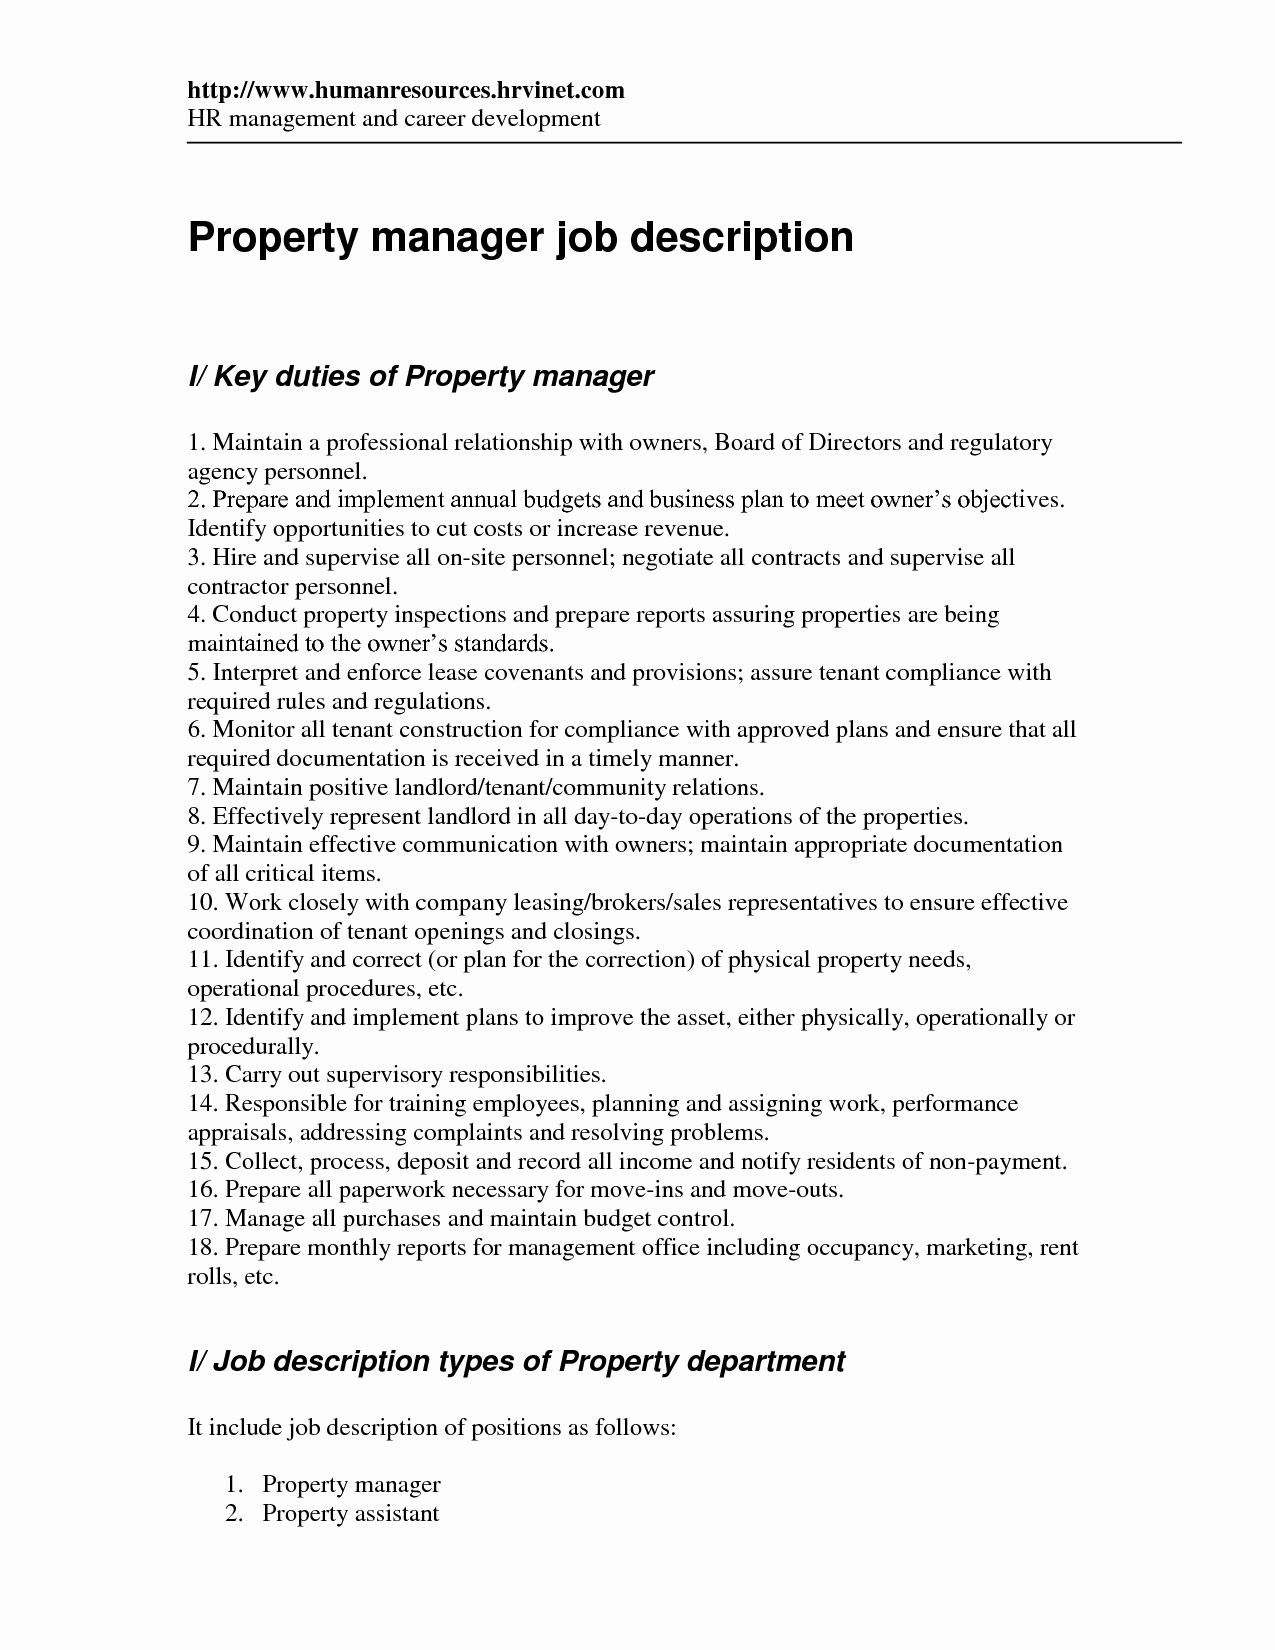 Property Manager Job Description Samples Botbuzz